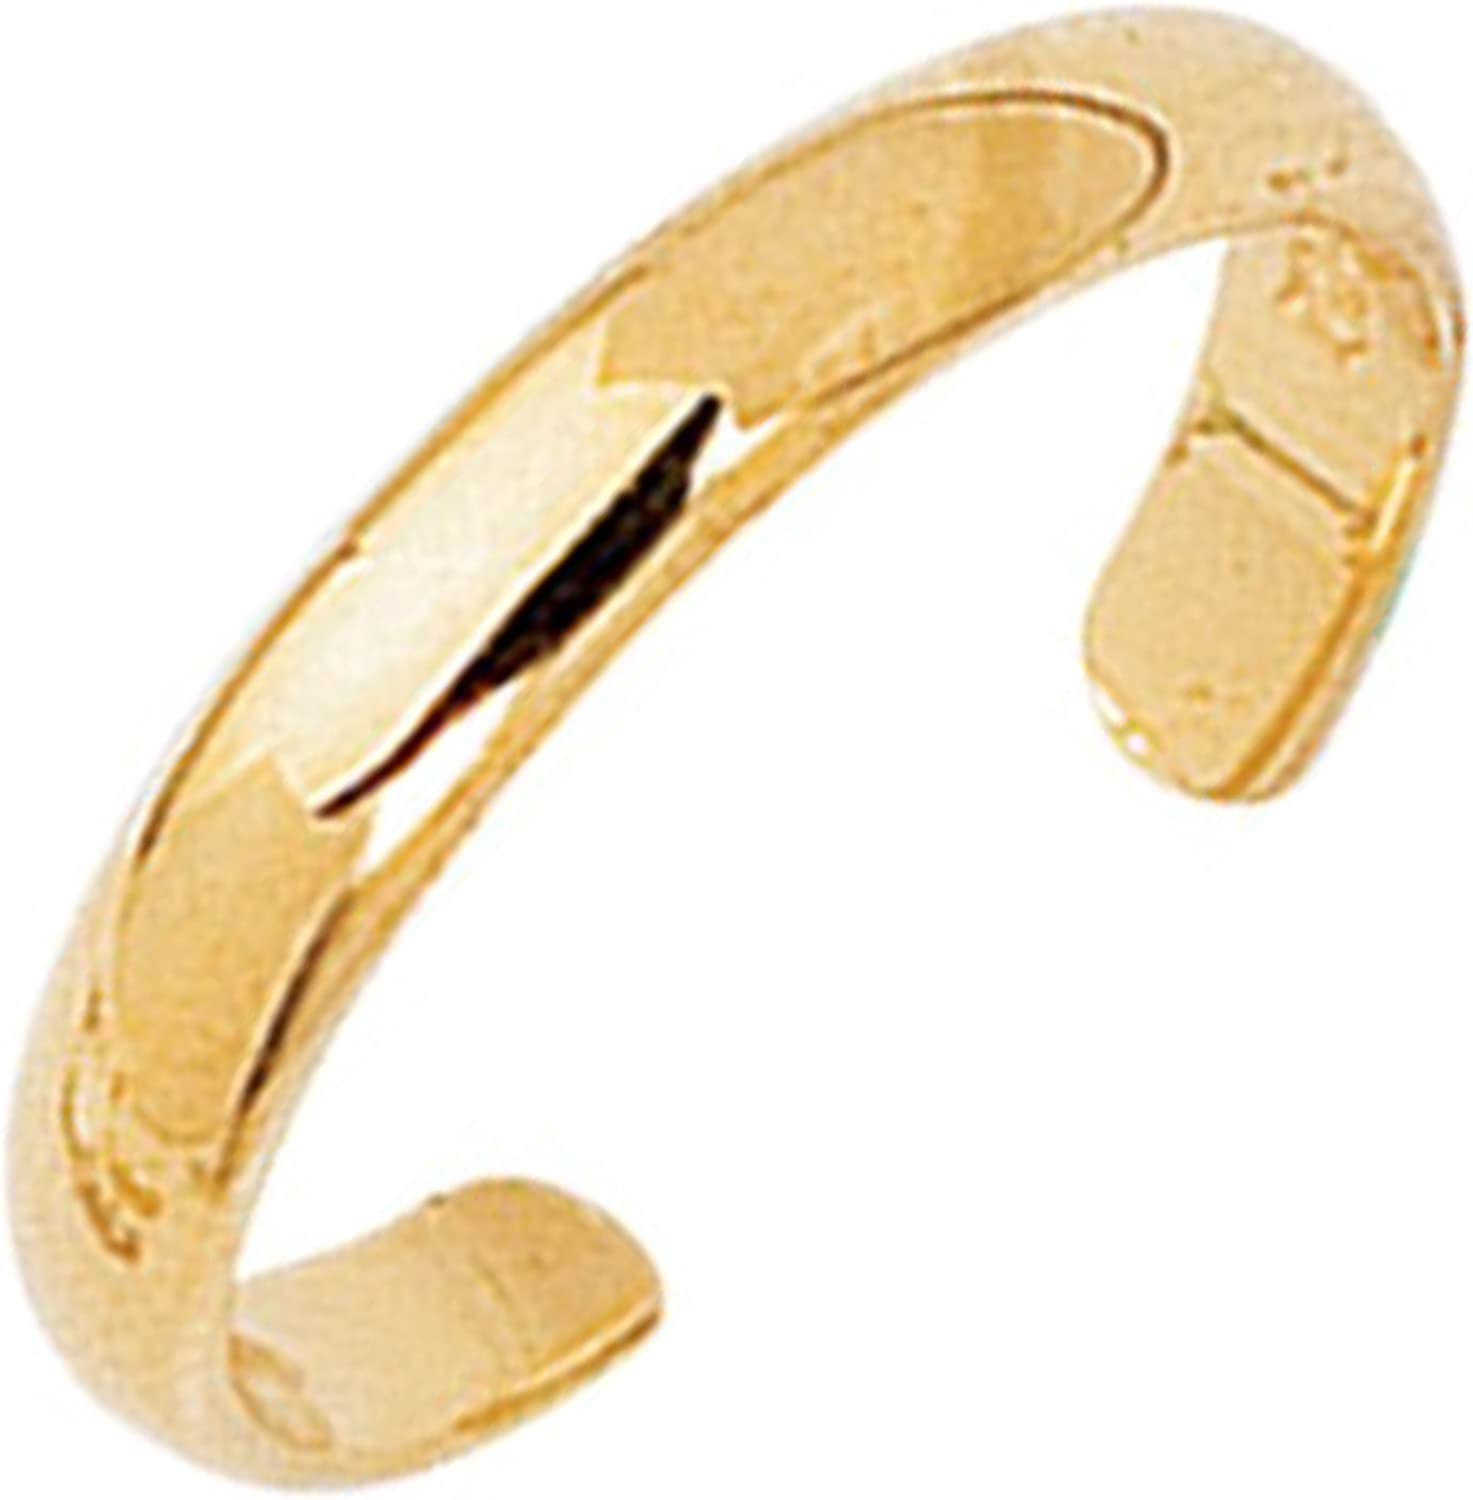 Ritastephens 14k Solid Gold Shiny High Polished Plain Band Toe Ring Adjustable Yellow or White